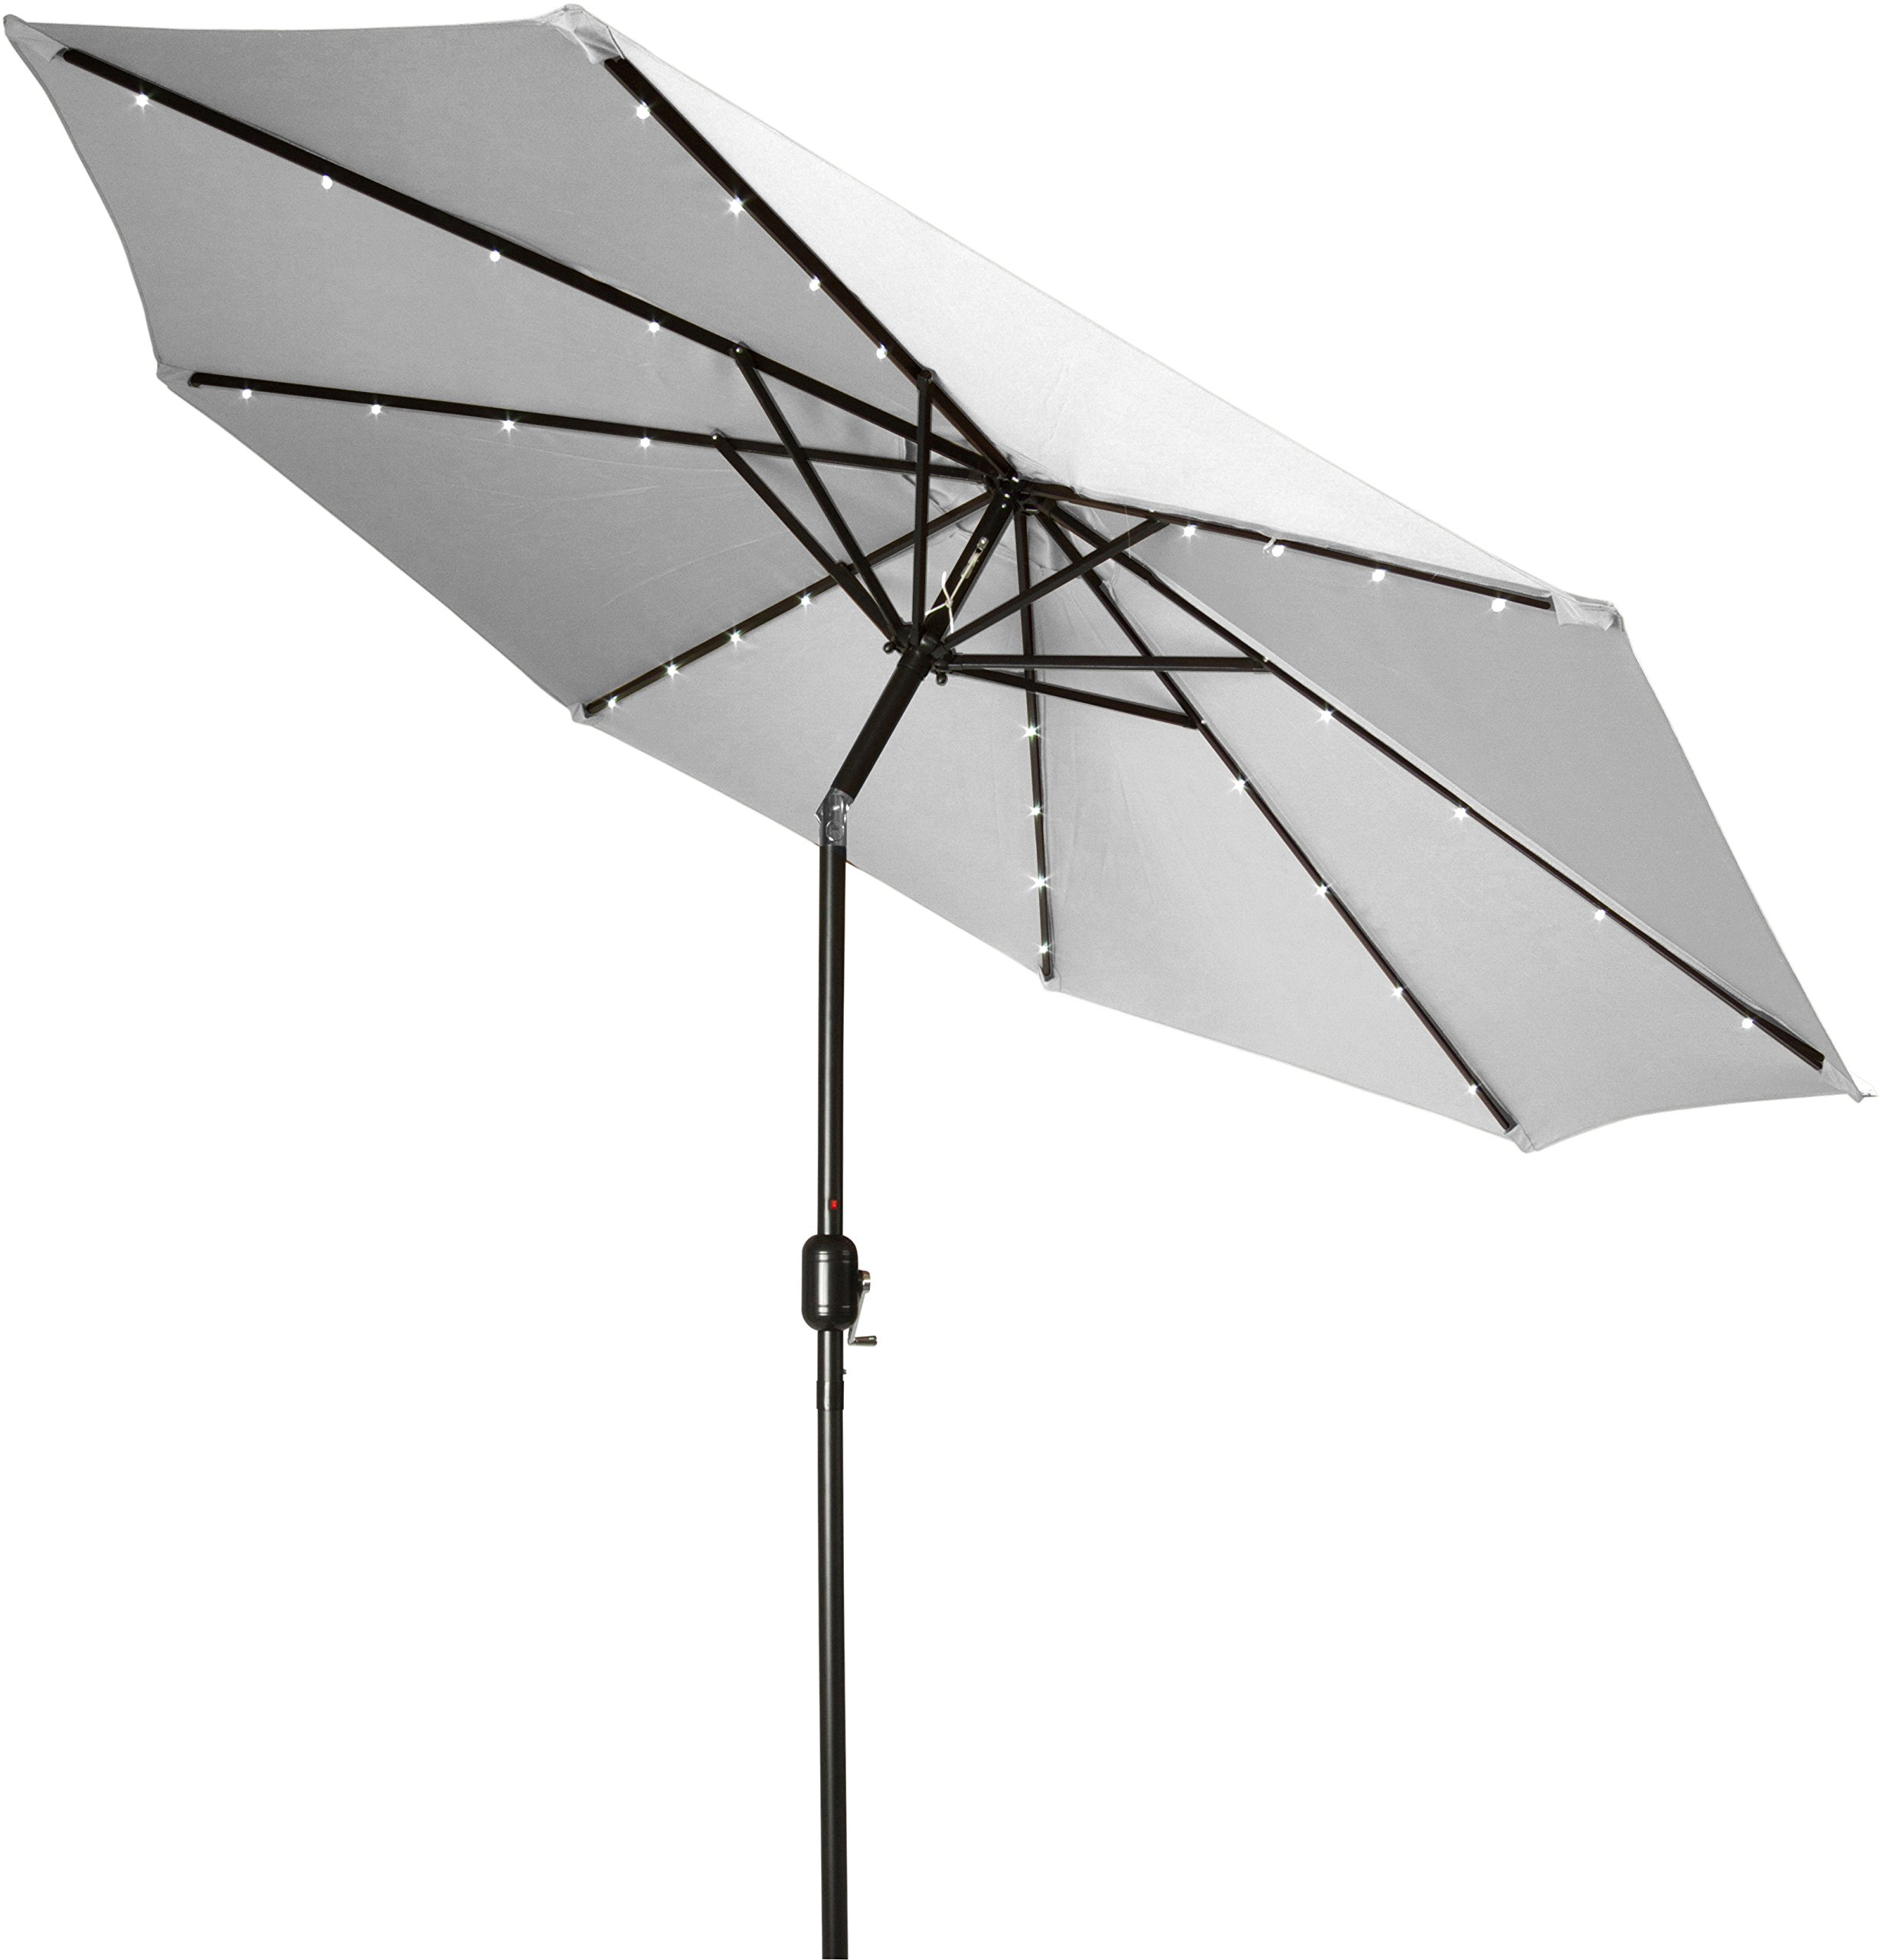 Trademark Innovations 7' Solar LED Patio Umbrella (Gray) - 7' diameter, crank operation, with tilt option 8 Steel ribs, each rib has 3 LED lights Fabric 180G Polyester with Black Steel Coating - shades-parasols, patio-furniture, patio - 81NsrszUL2L -